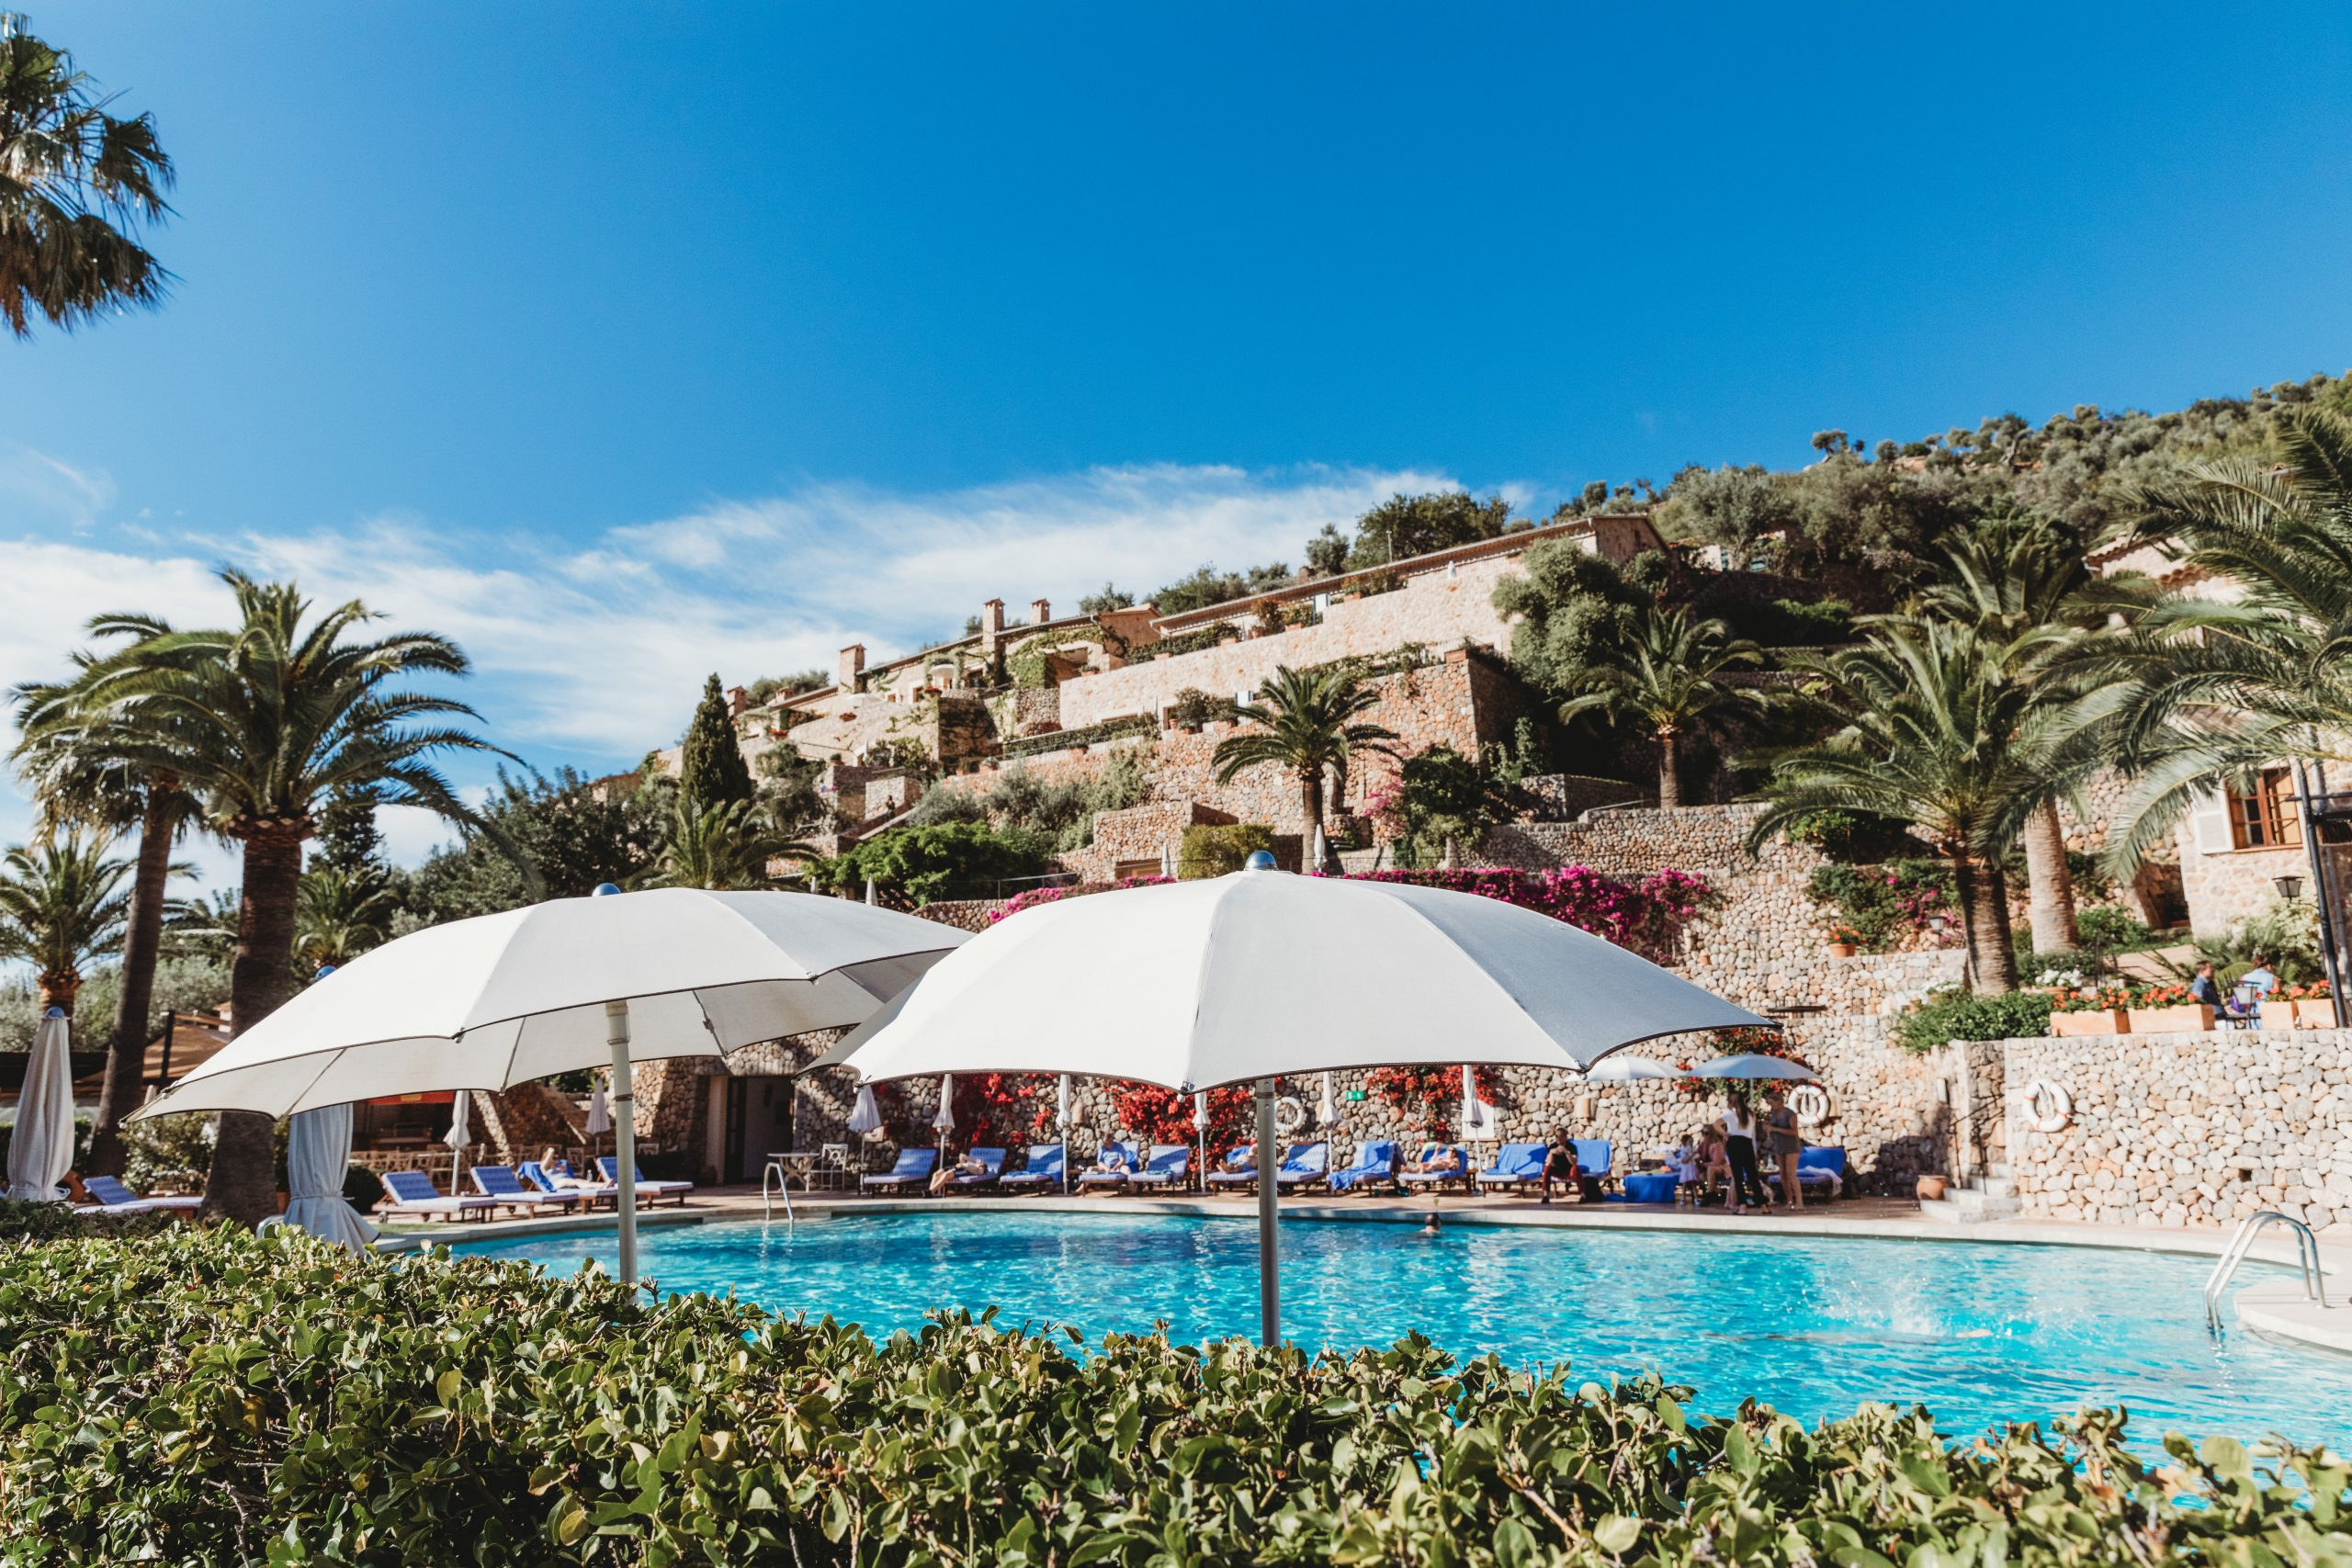 Need A Holiday? Join Us Virtually at Magical Mallorca's La Residencia Through the Words and Images of Photographer Bridget Wood